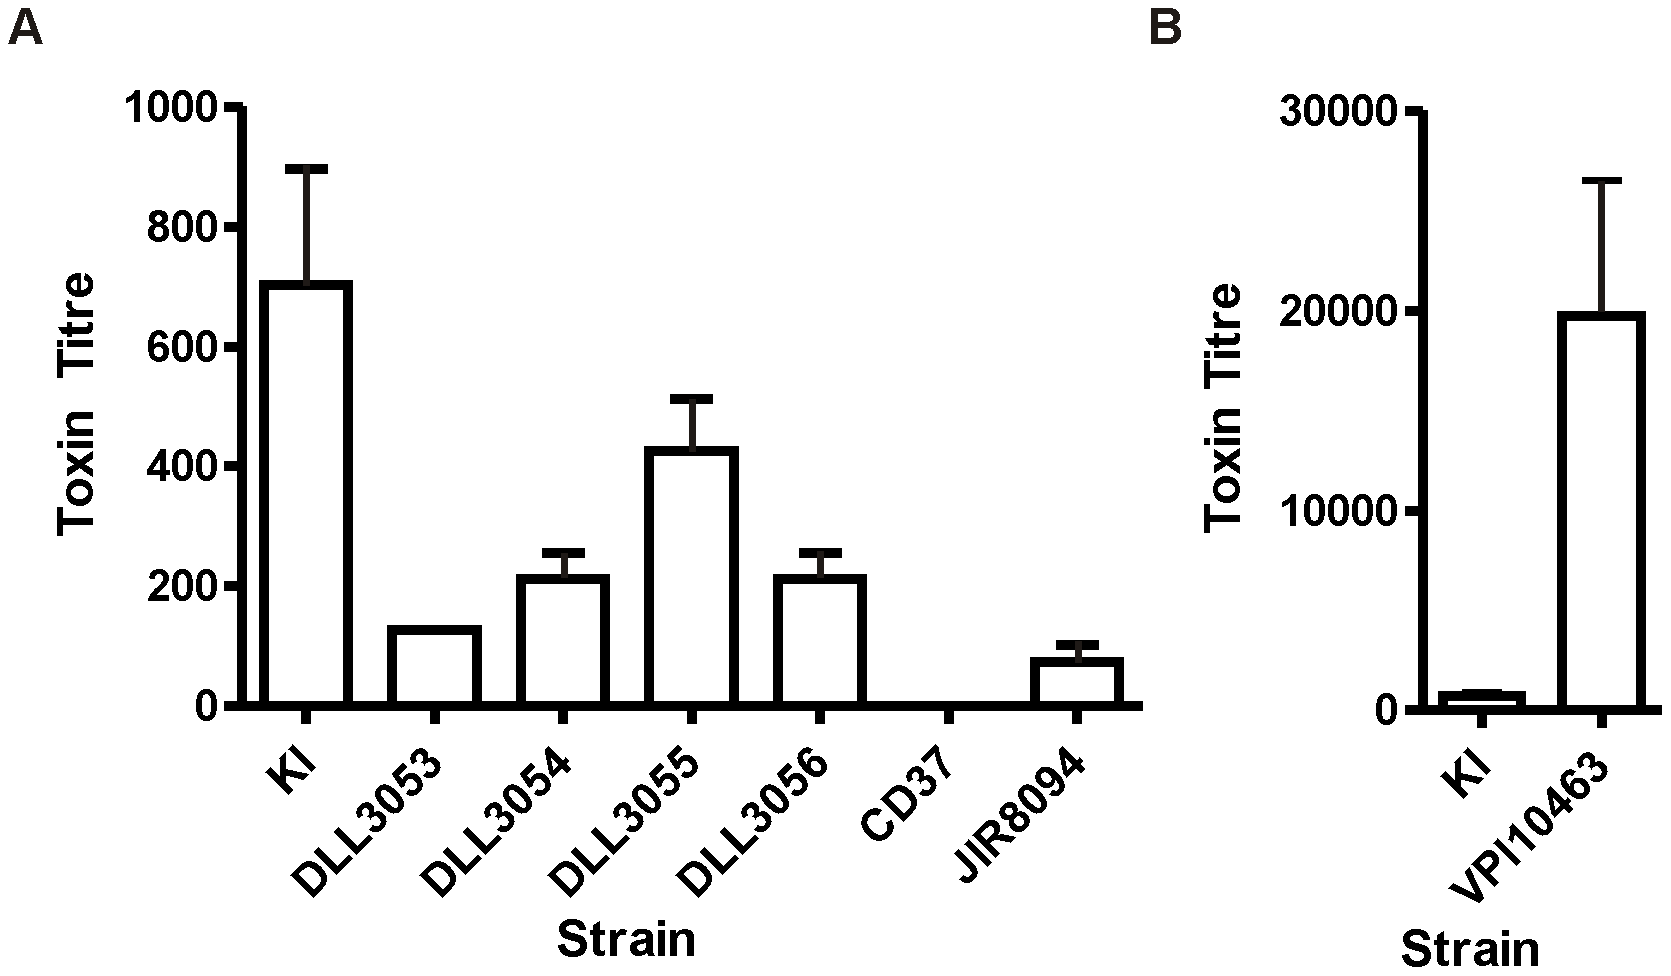 Comparative analysis of toxin production by naturally occurring <i>tcdC</i> clinical isolates.